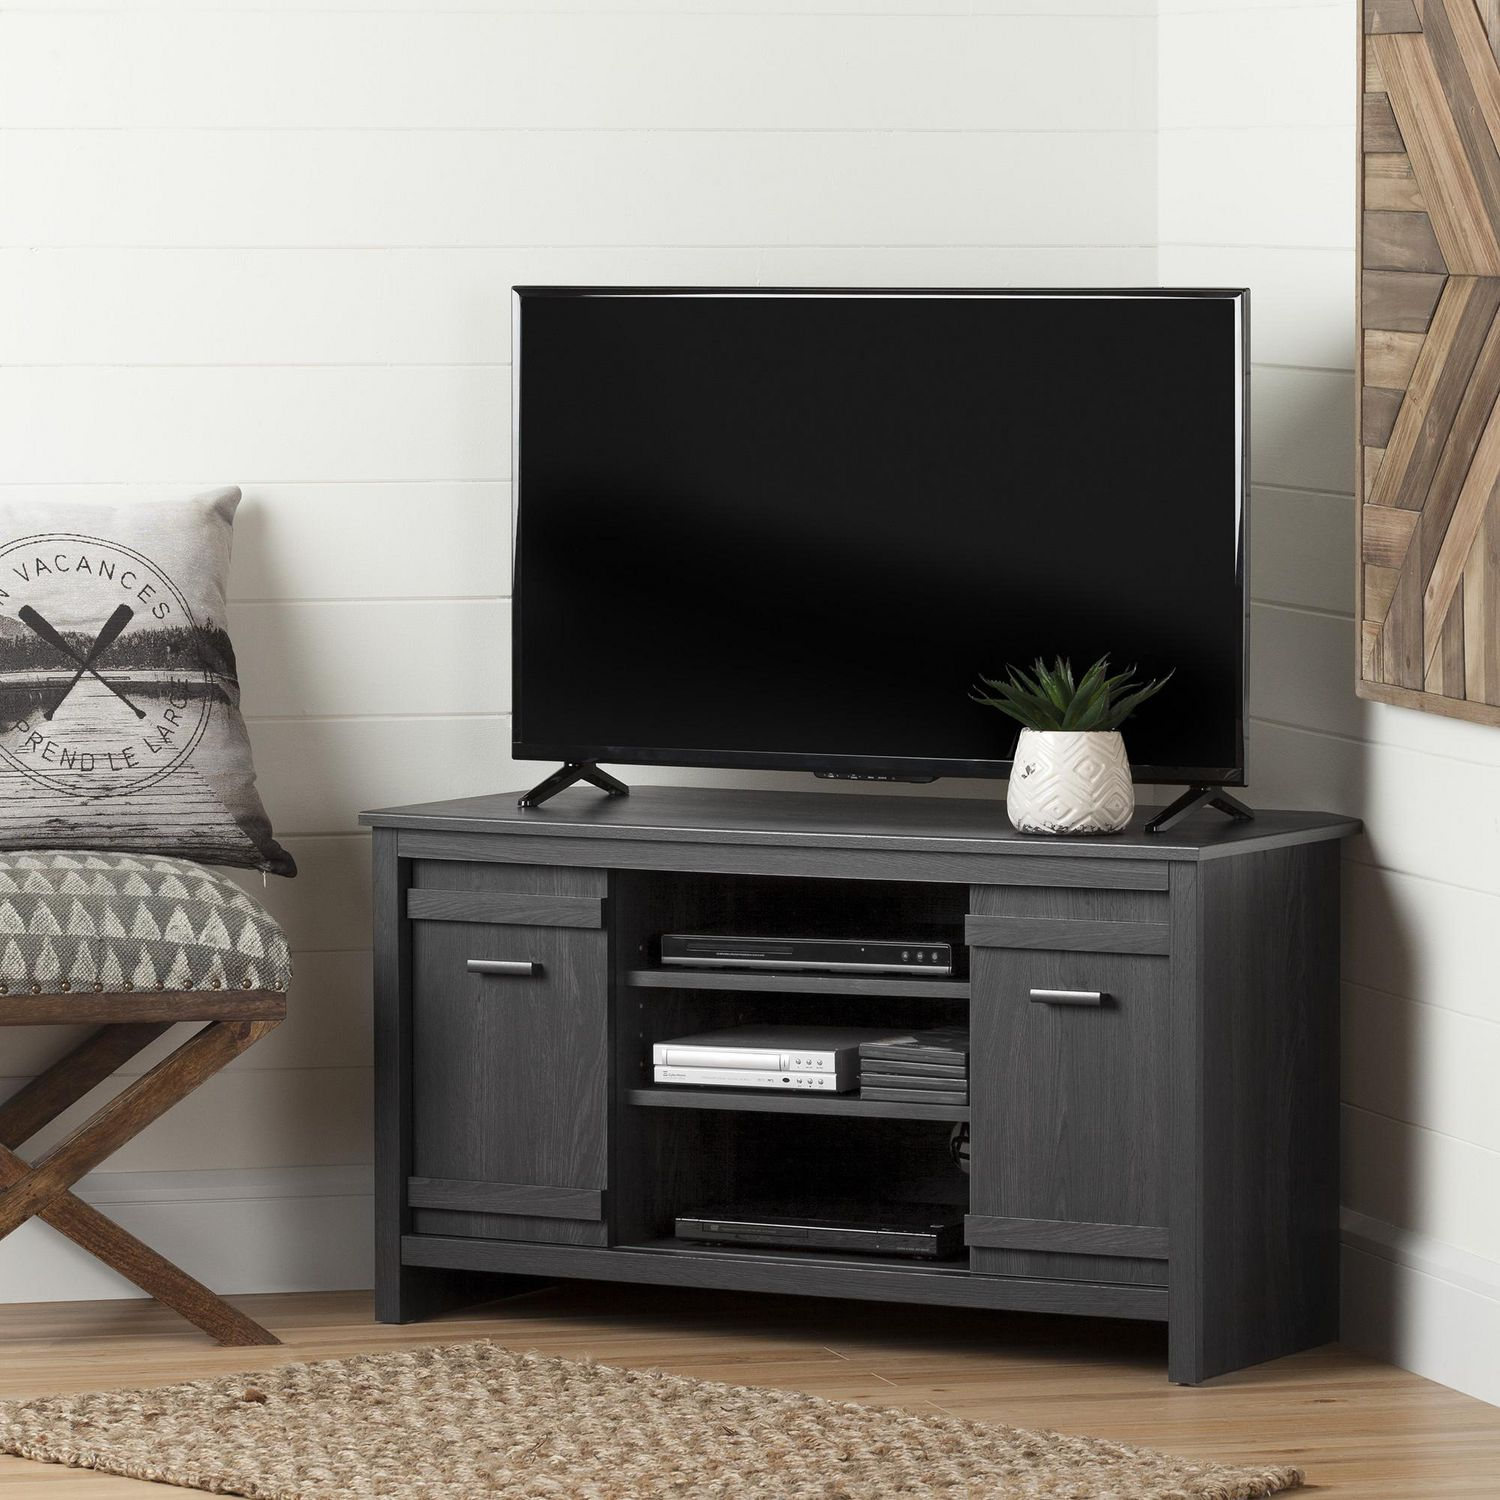 South Shore Exhibit Corner Tv Stand For Tvs Up To 42 Gray Oak  # Meuble Tele En Coin